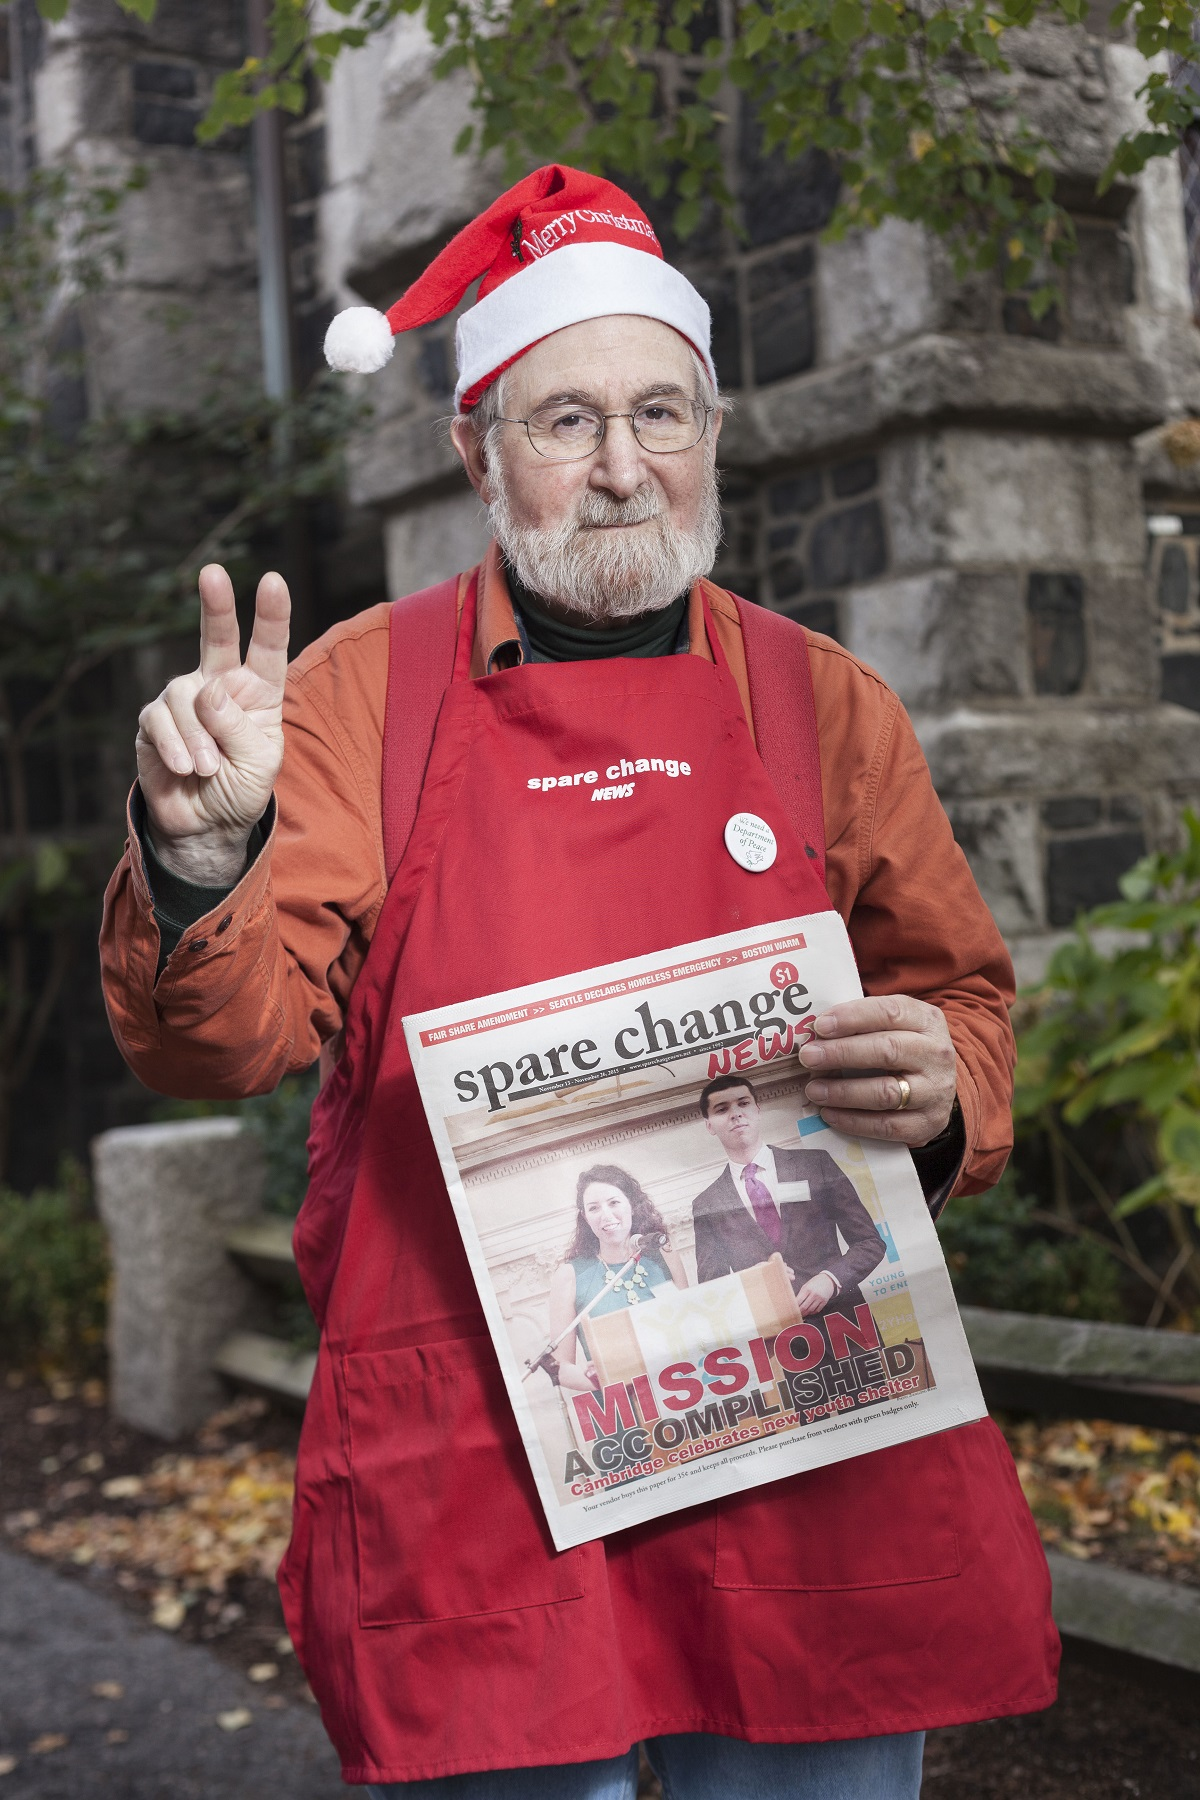 Spare Change News vendor Marc getting into the holiday spirit. Credit: Alena Kuzub